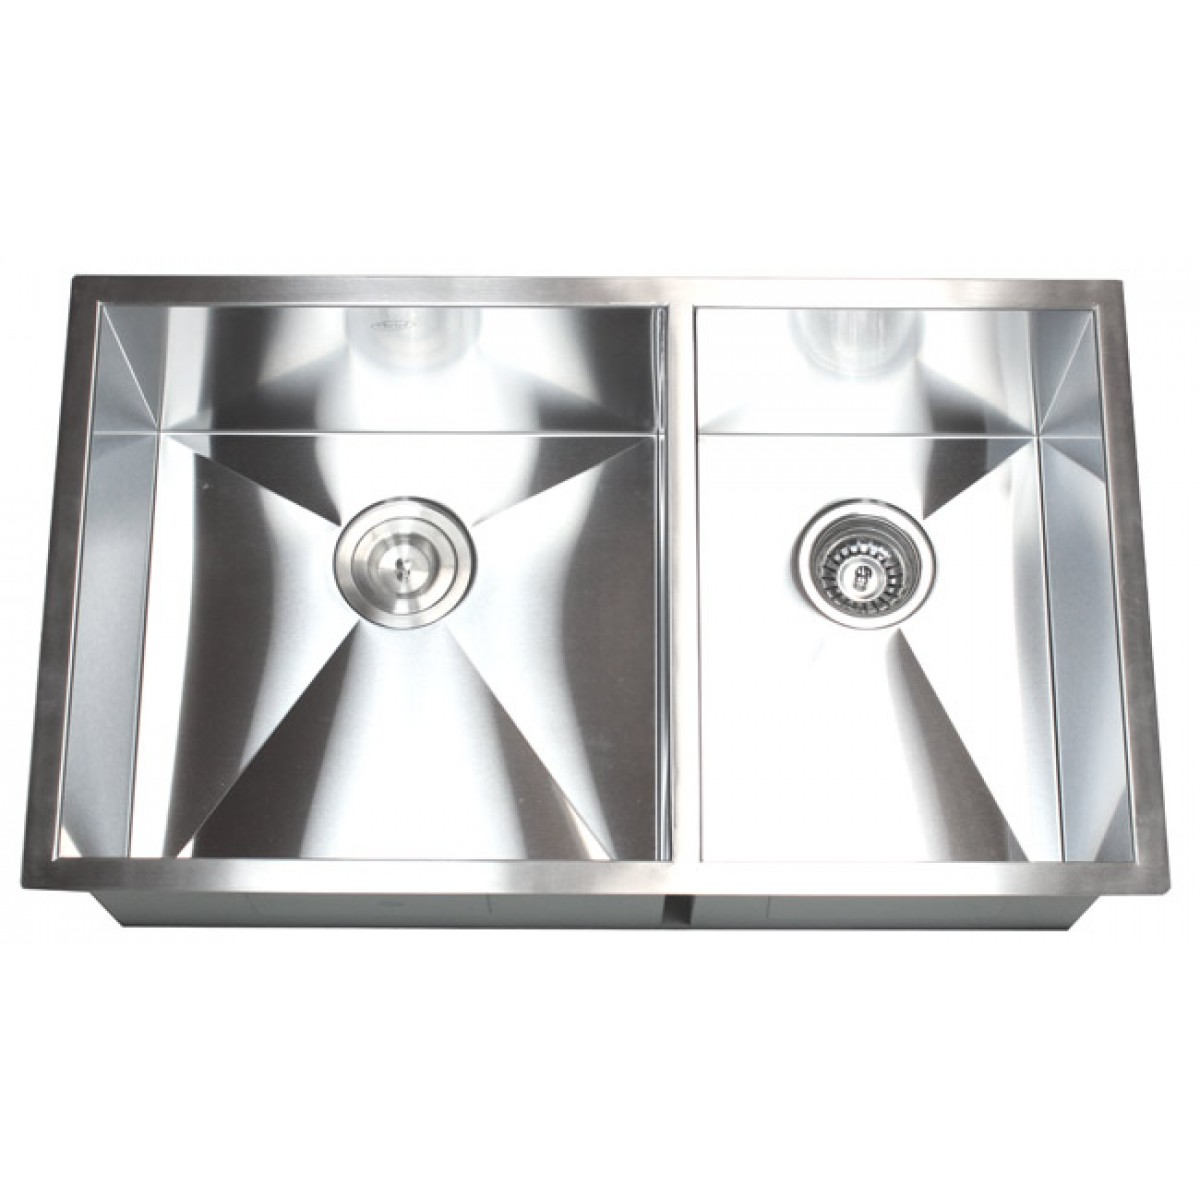 32 Inch Stainless Steel Undermount 60 40 Double Bowl Kitchen Sink Zero Radius Design